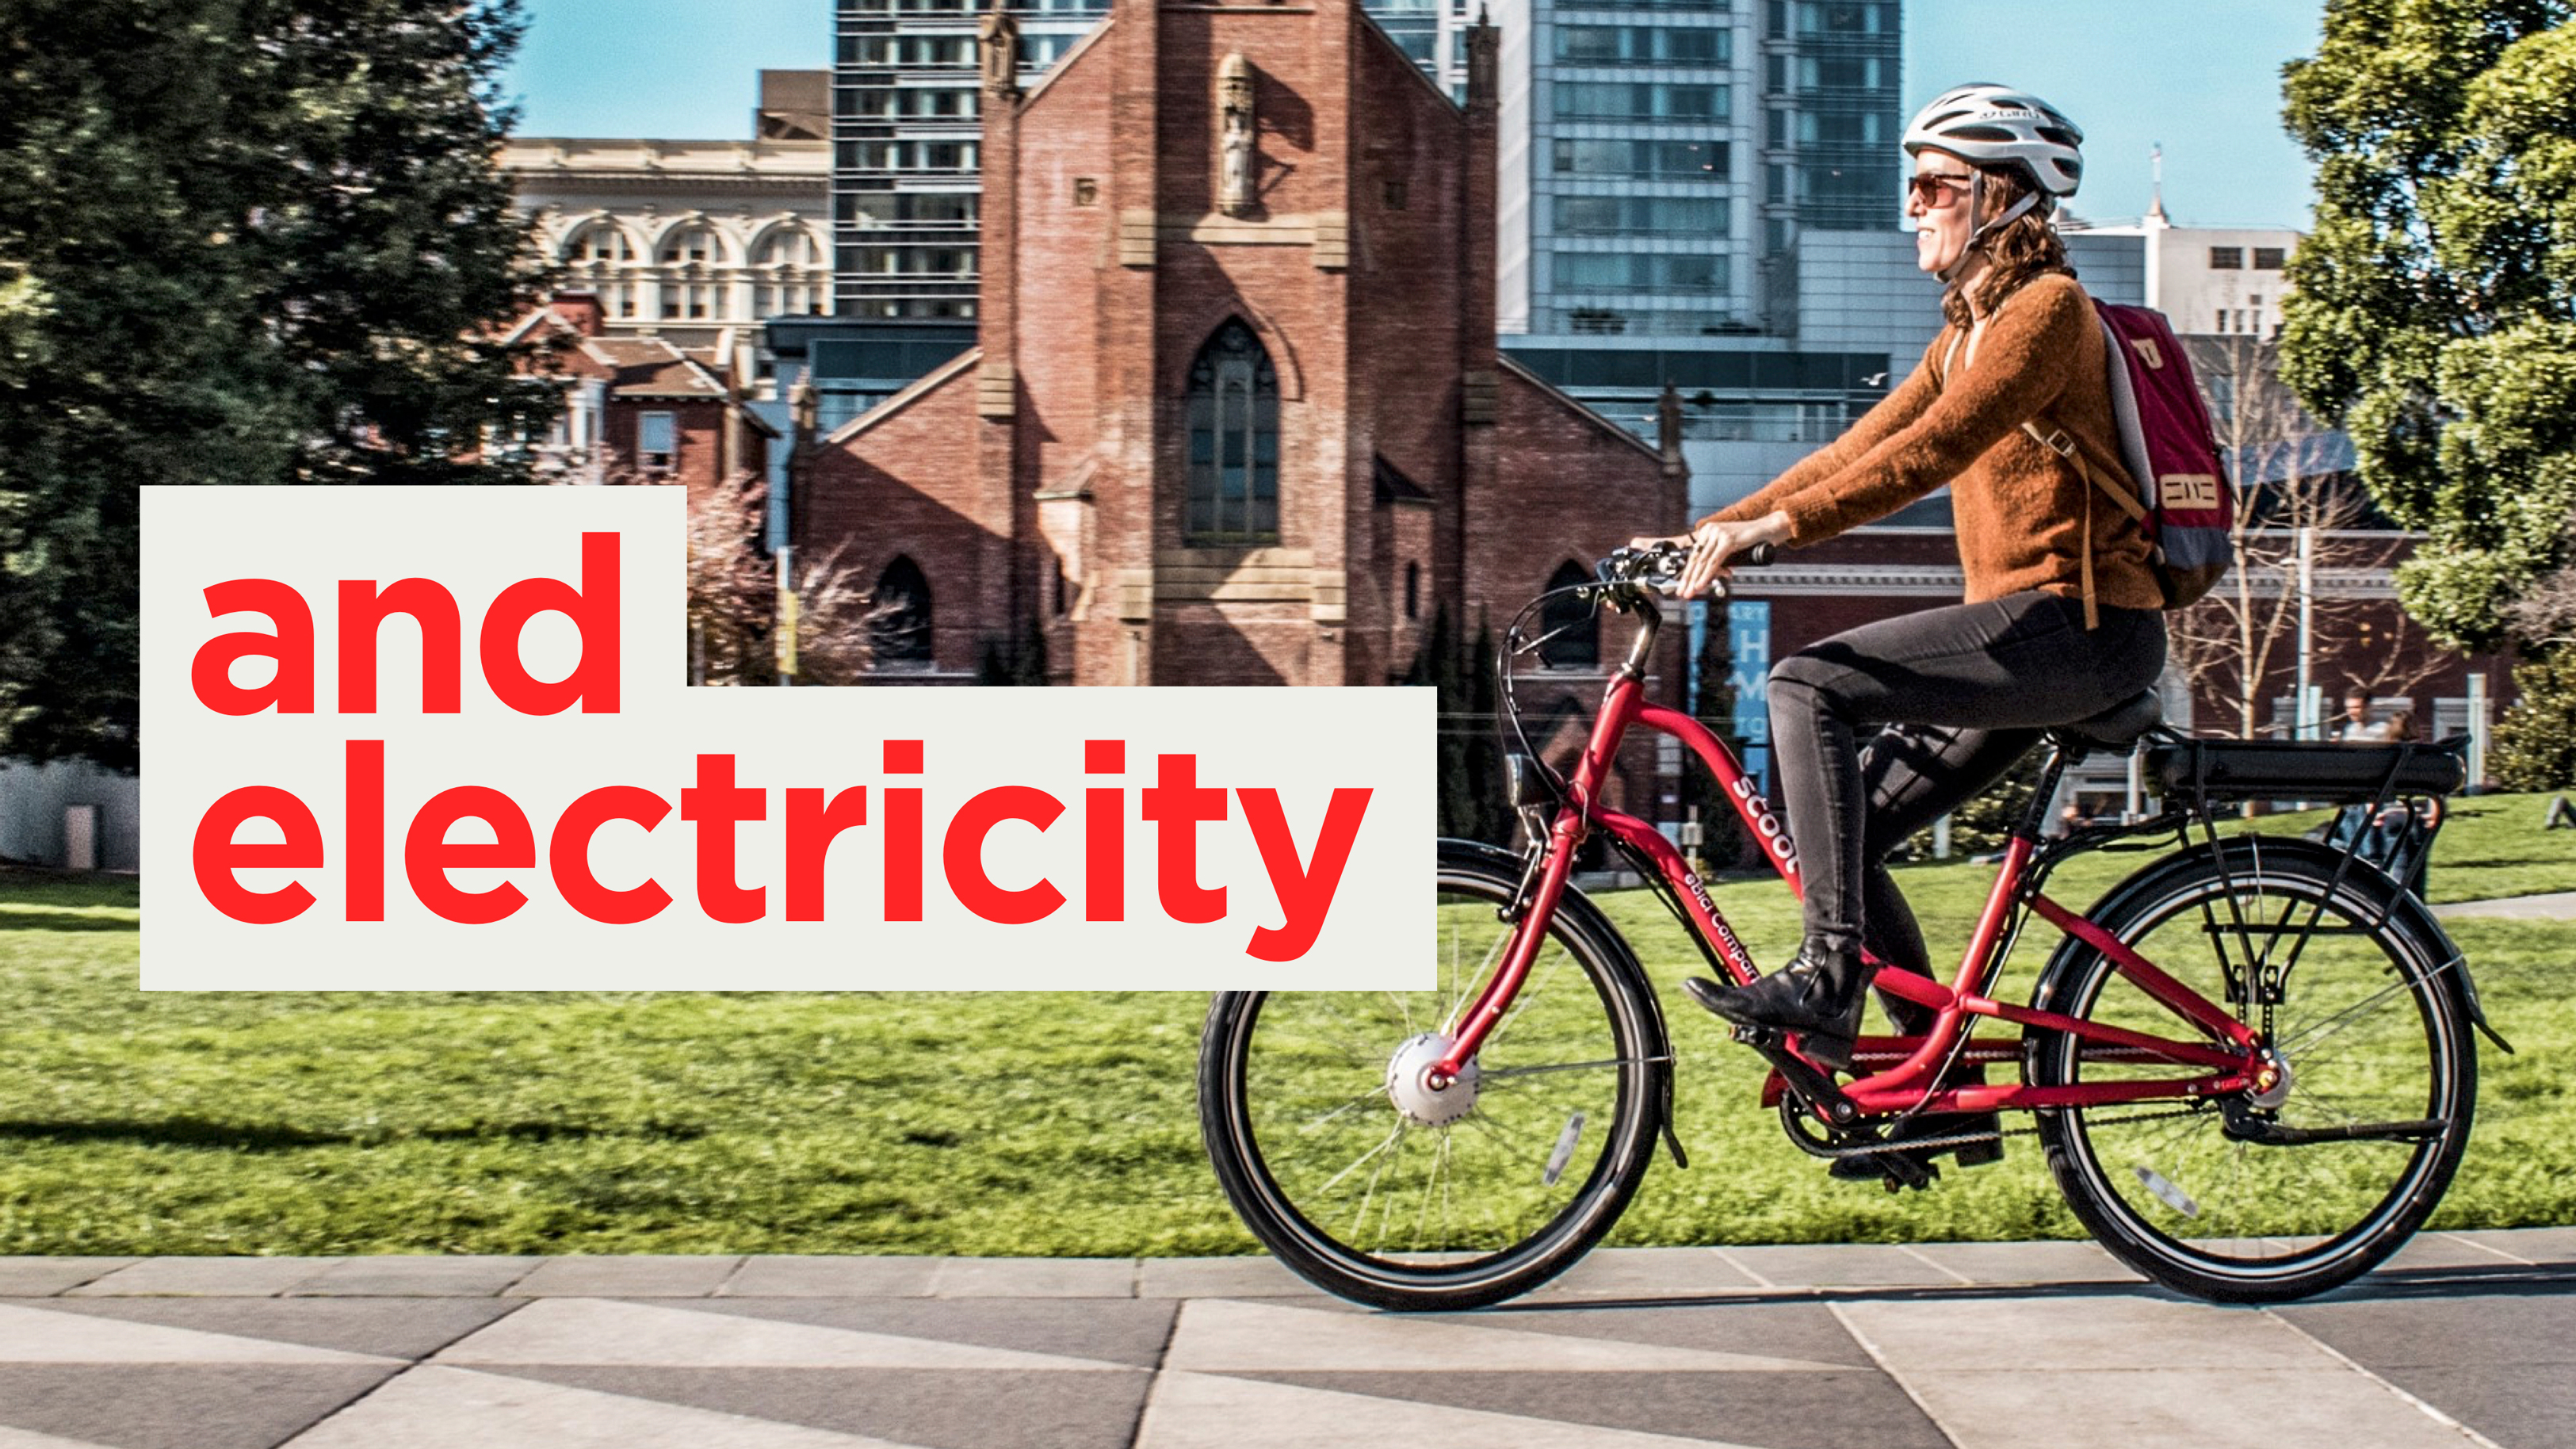 """A person riding an electric bicycle with typography imposed over the top of it saying """"...and electricity"""""""